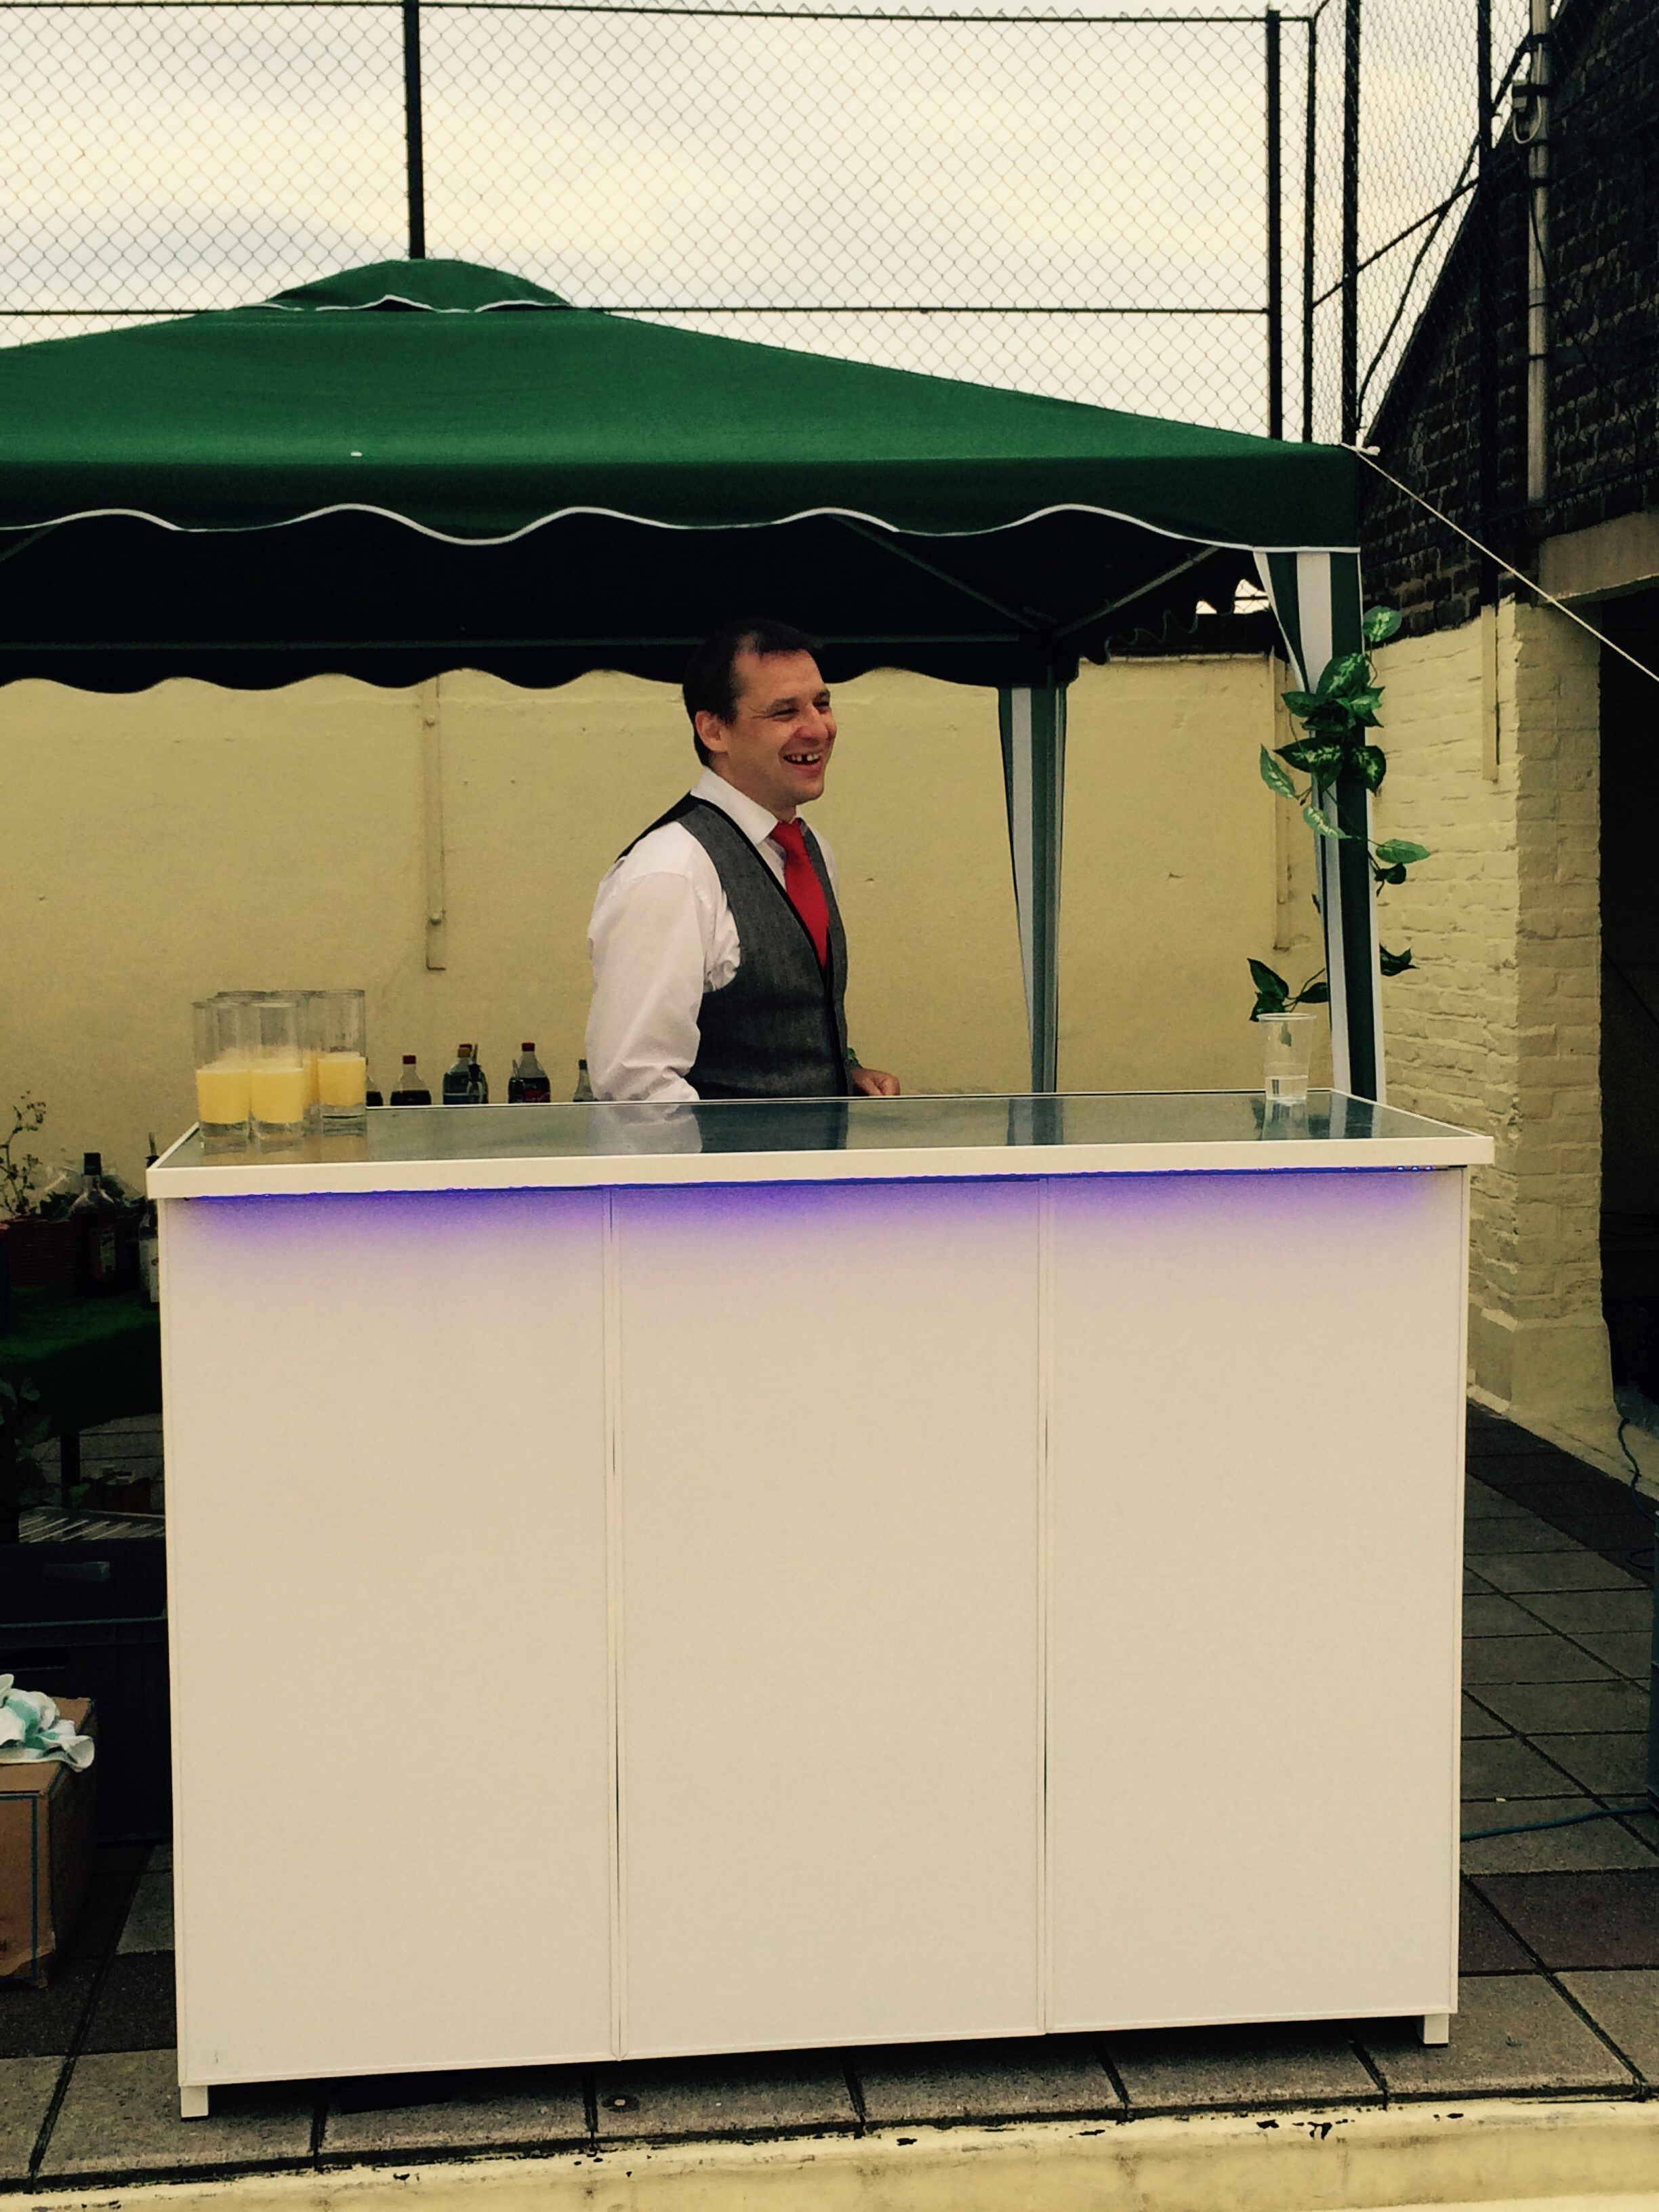 Quick to set up mobile bar unit.